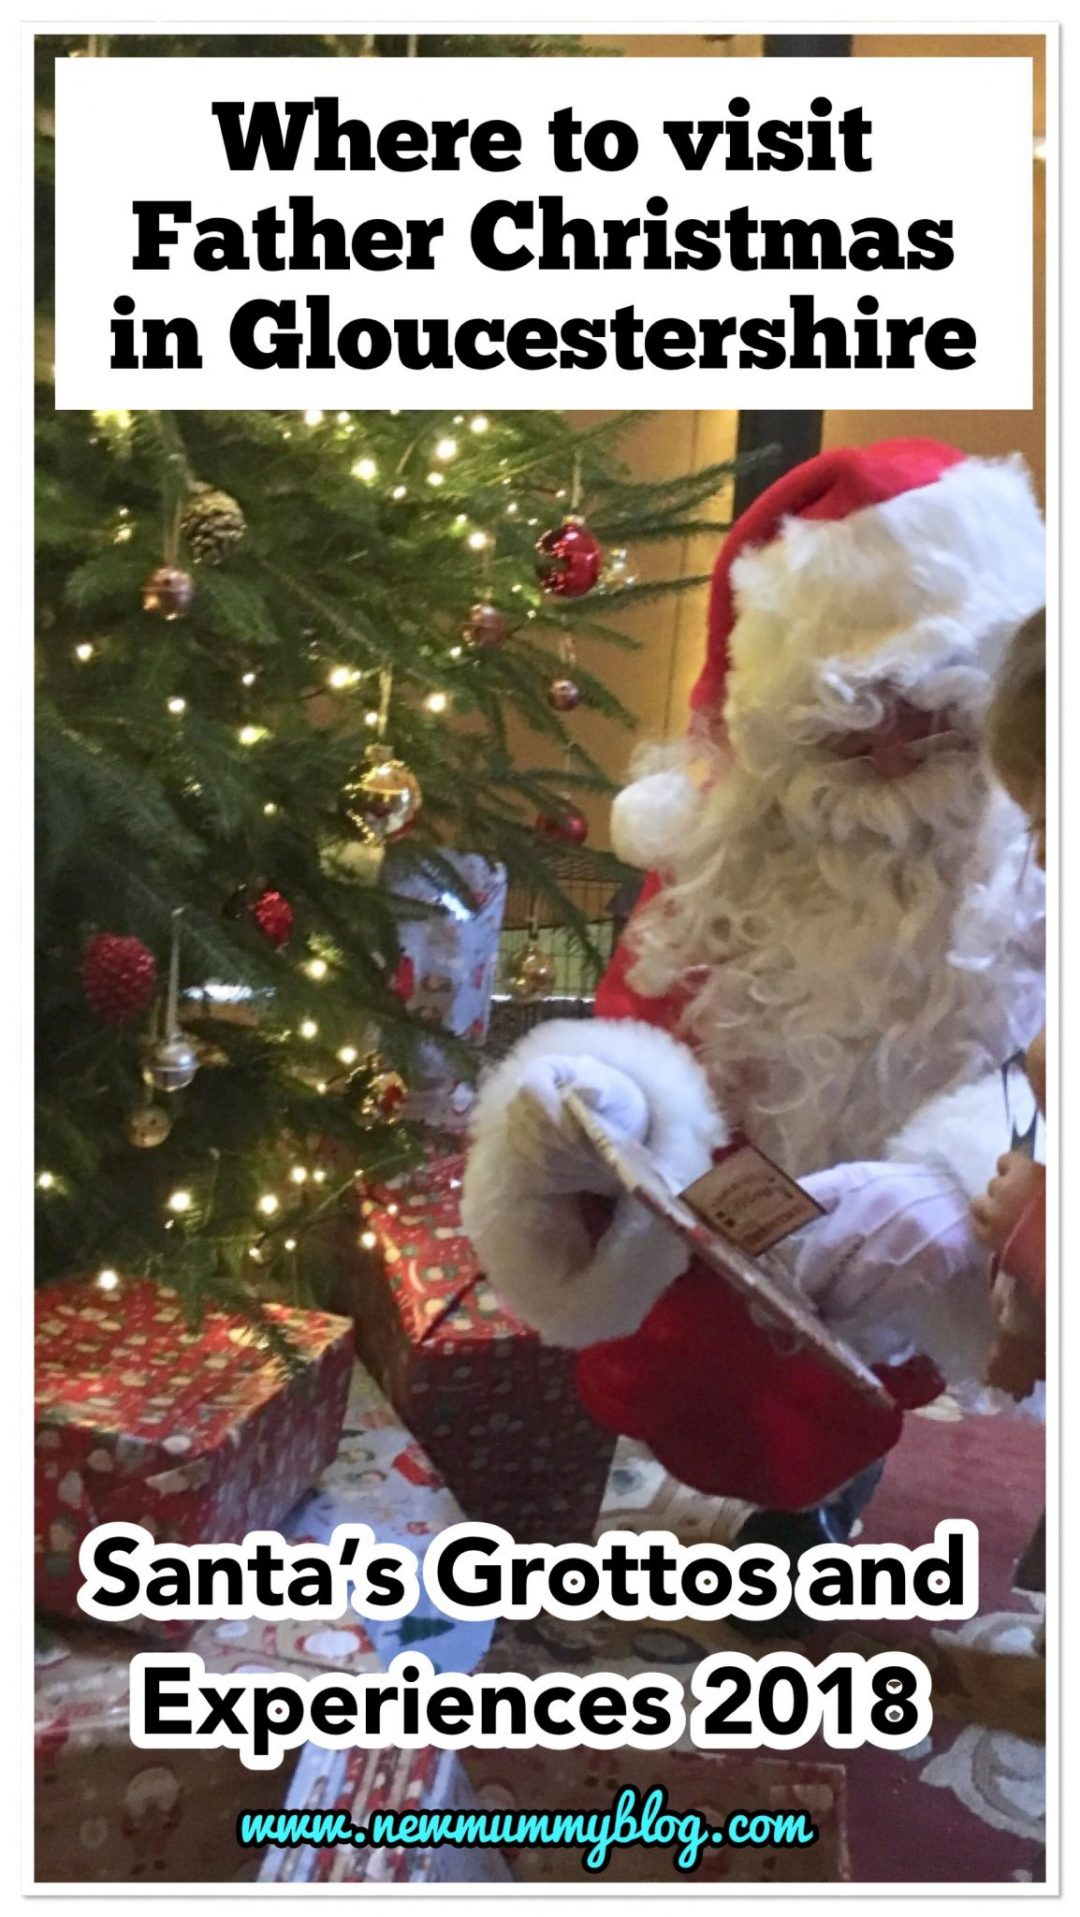 Where to visit Father Christmas in Gloucestershire 2018 - 20+ breakfast with Santa, Santa train, Santa's grottos and winter wonderland experiences near Cheltenham Gloucester Worcestershire Herefordshire - Visiting Santa Christmas tree presents